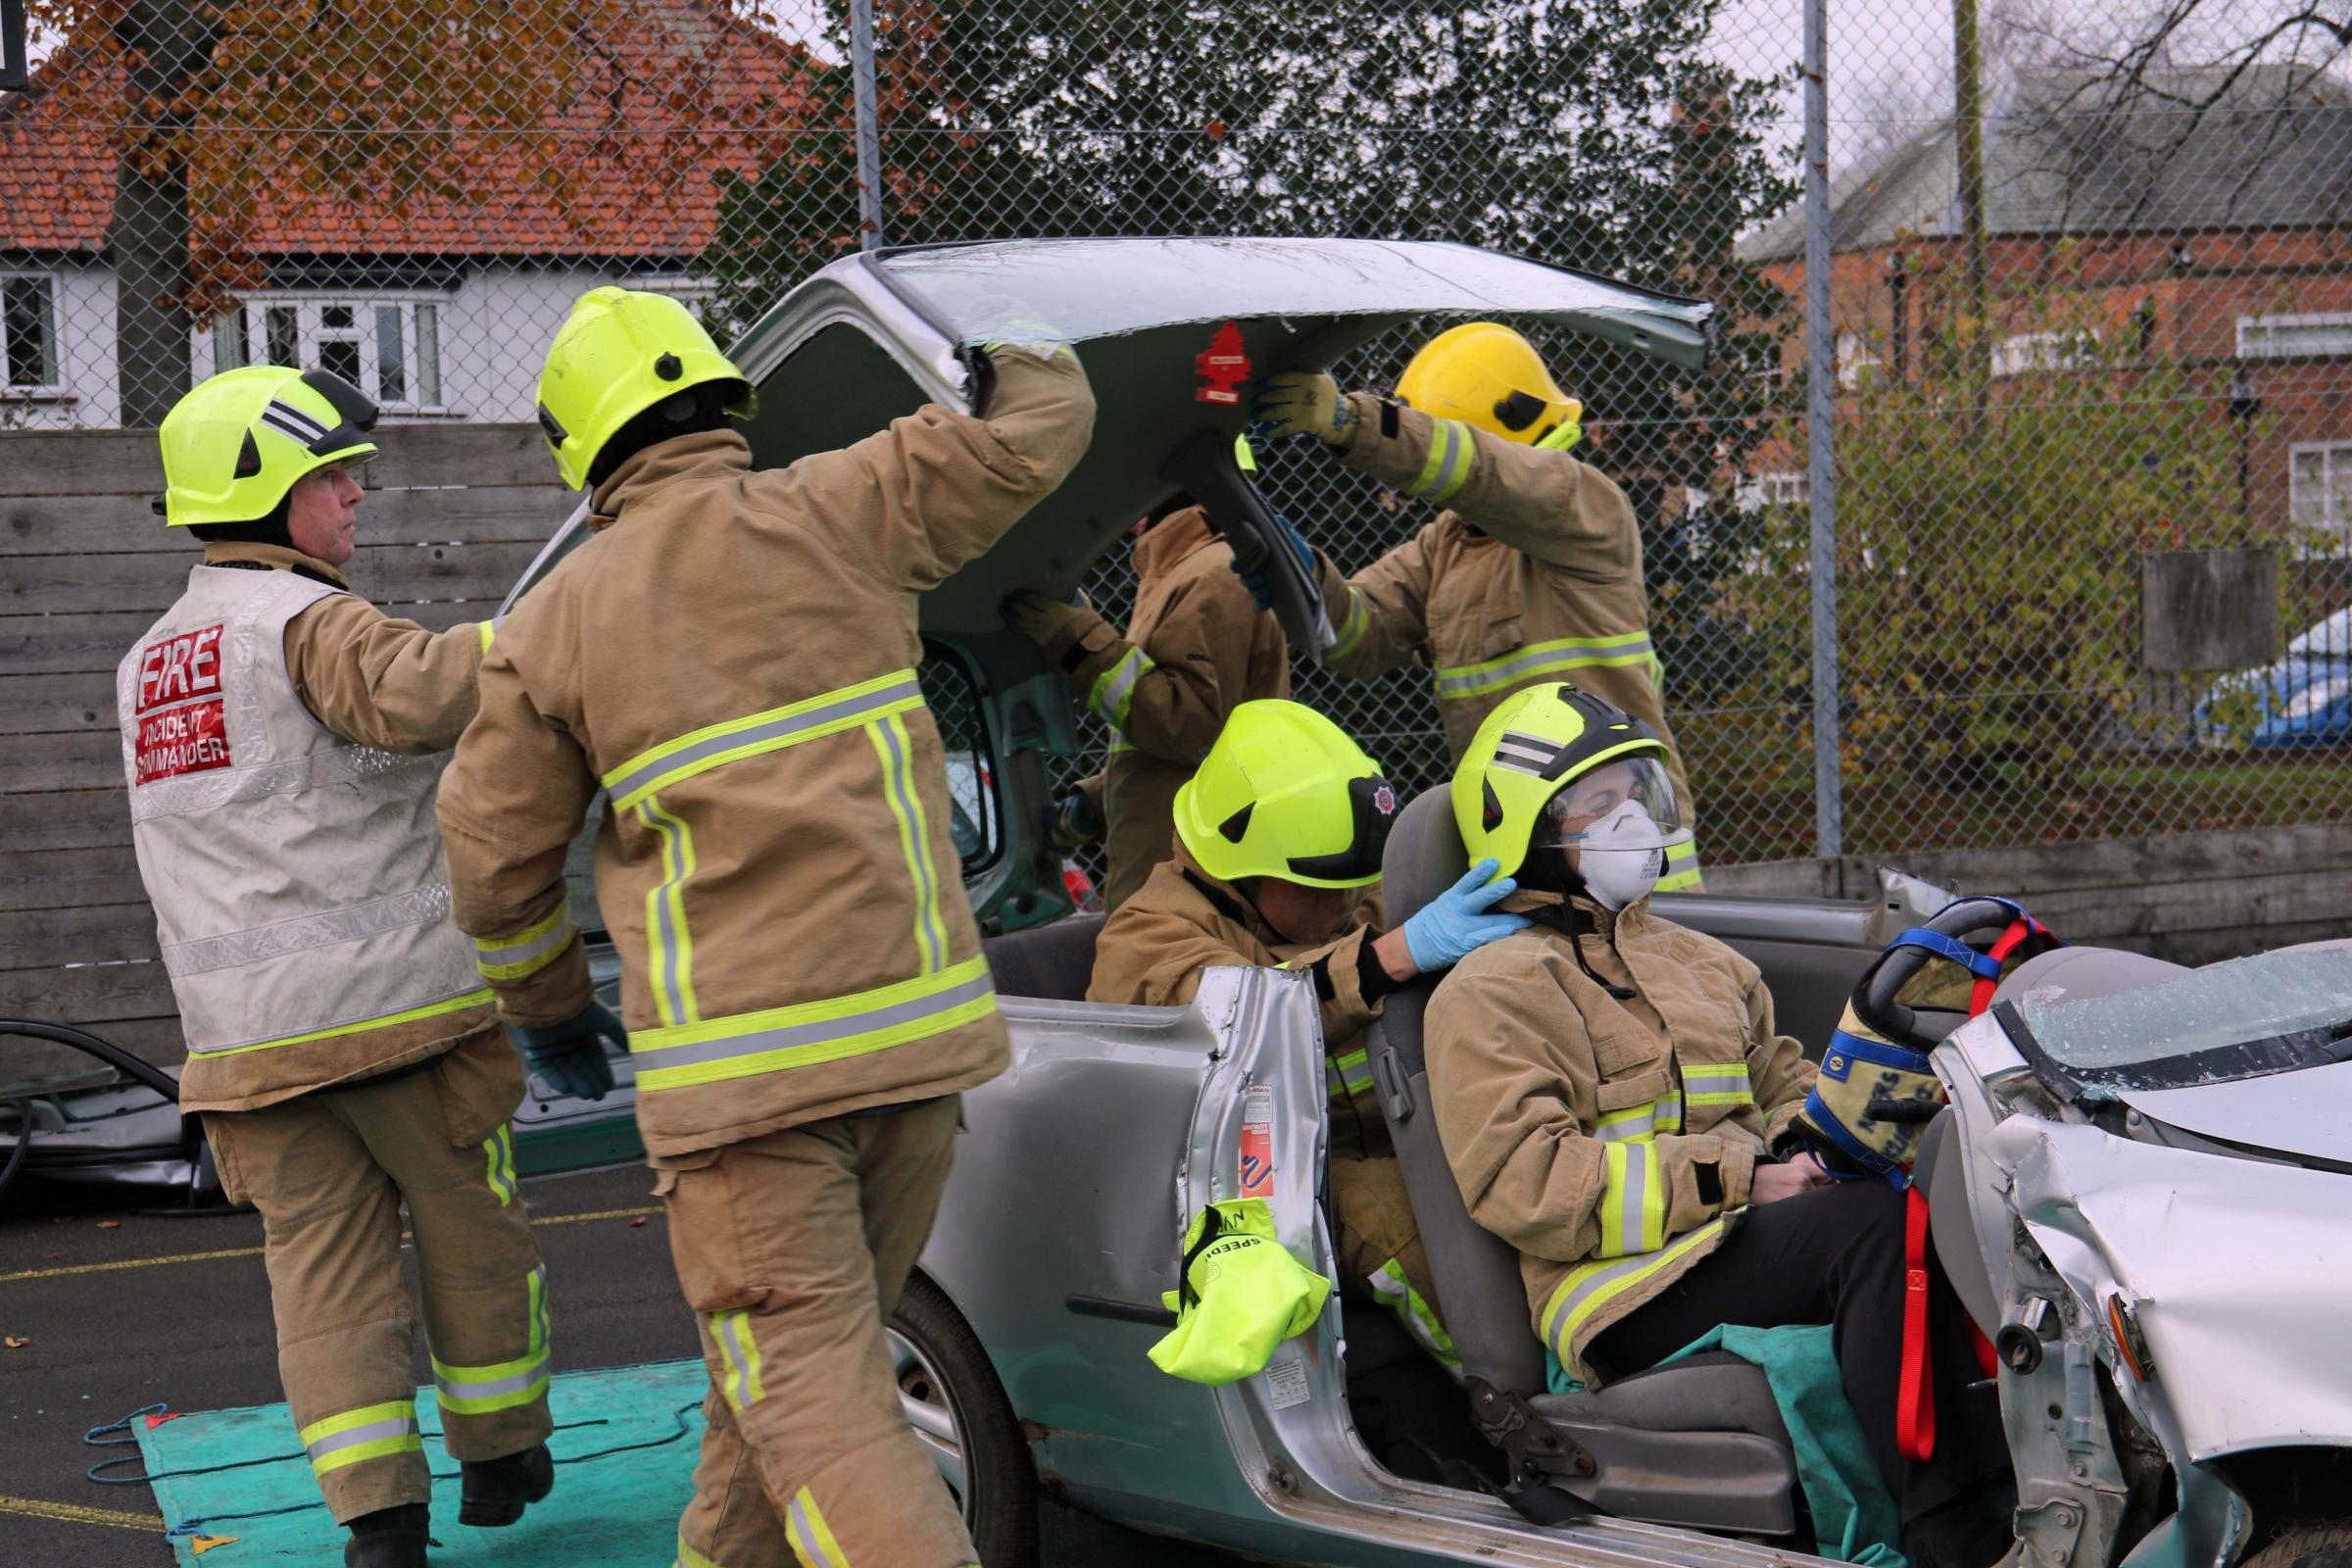 SAFE: Northallerton School and Sixth Form College teacher Kathryn Redpath is cut free from a wrecked car in an exercise designed to promote safe driving among the young.